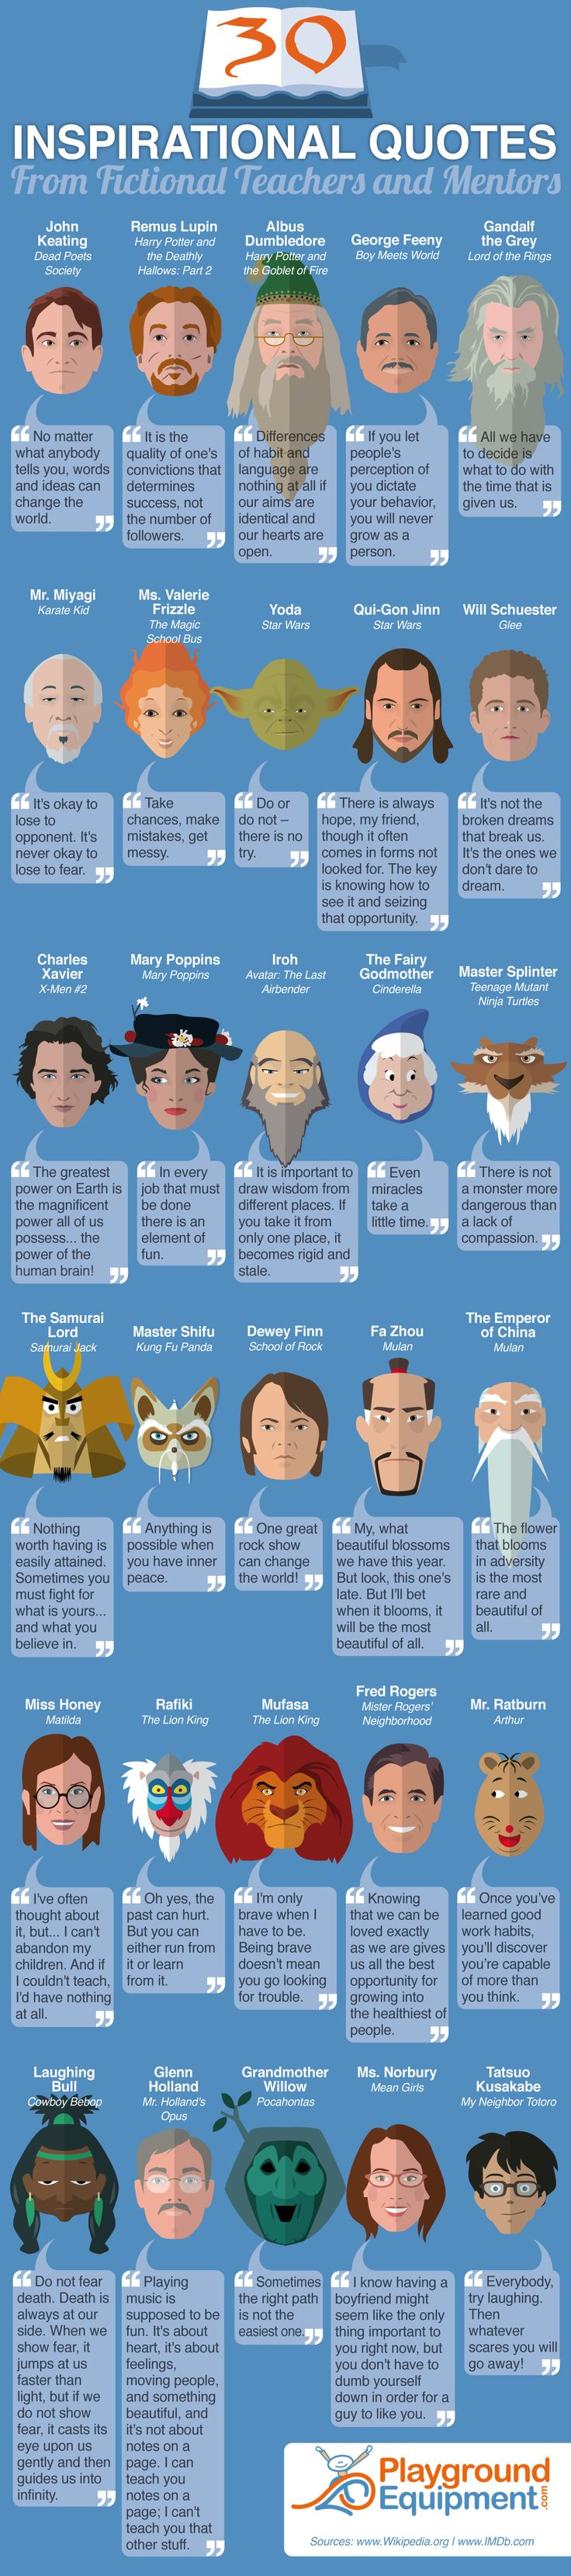 30 Inspirational Quotes from Fictional Teachers and Mentors - Playgroundequipment.com - Infographic